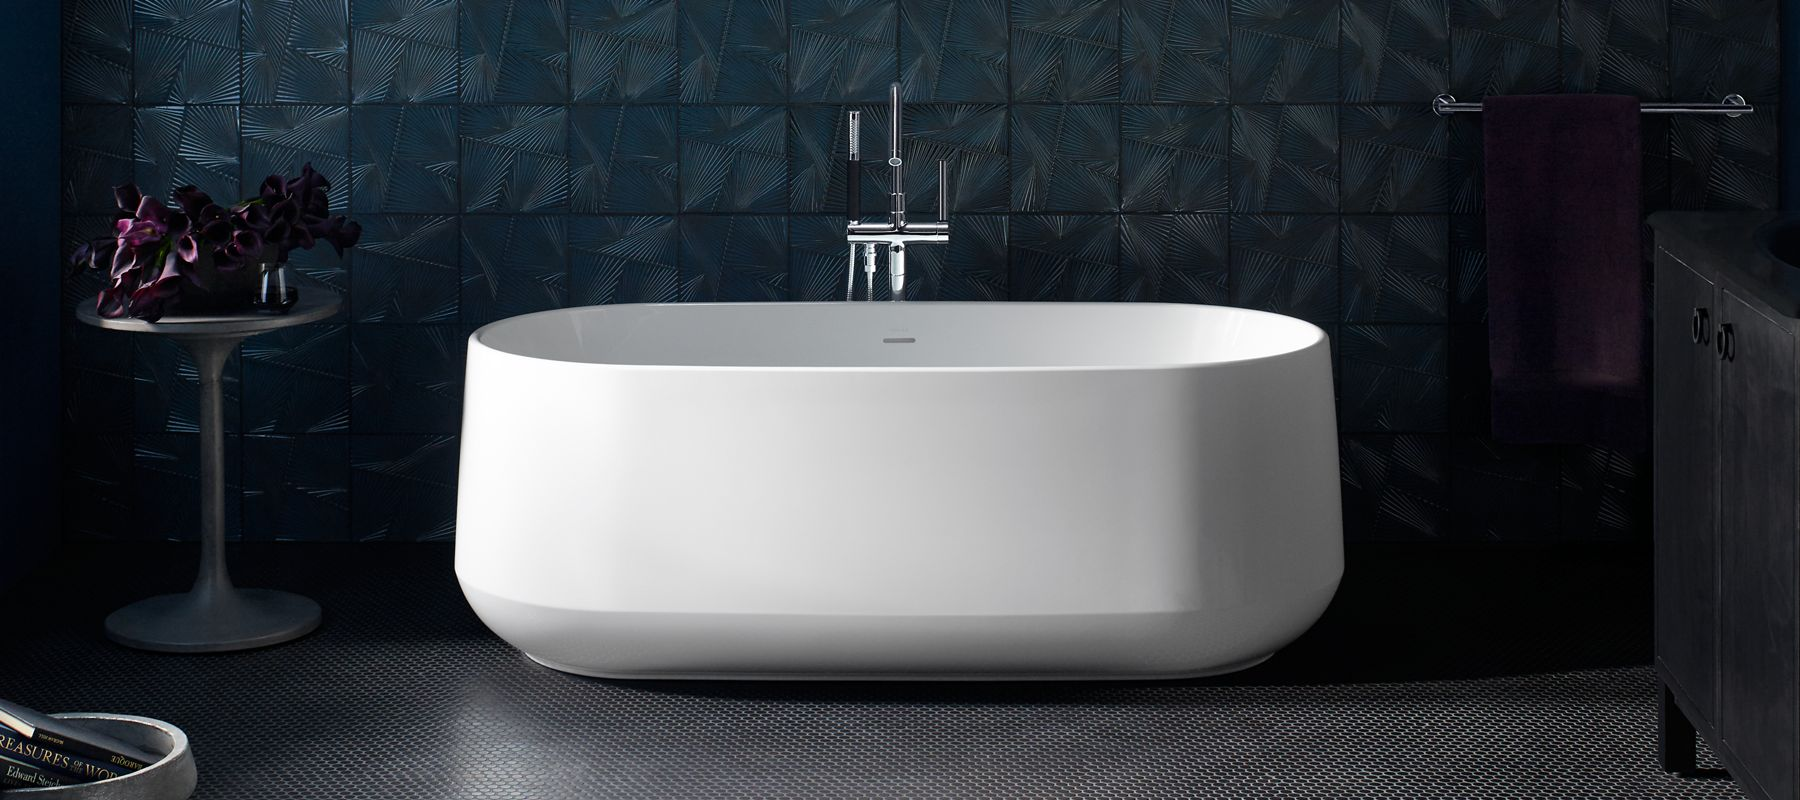 freestanding bath tub. the depths of design freestanding bath tub i